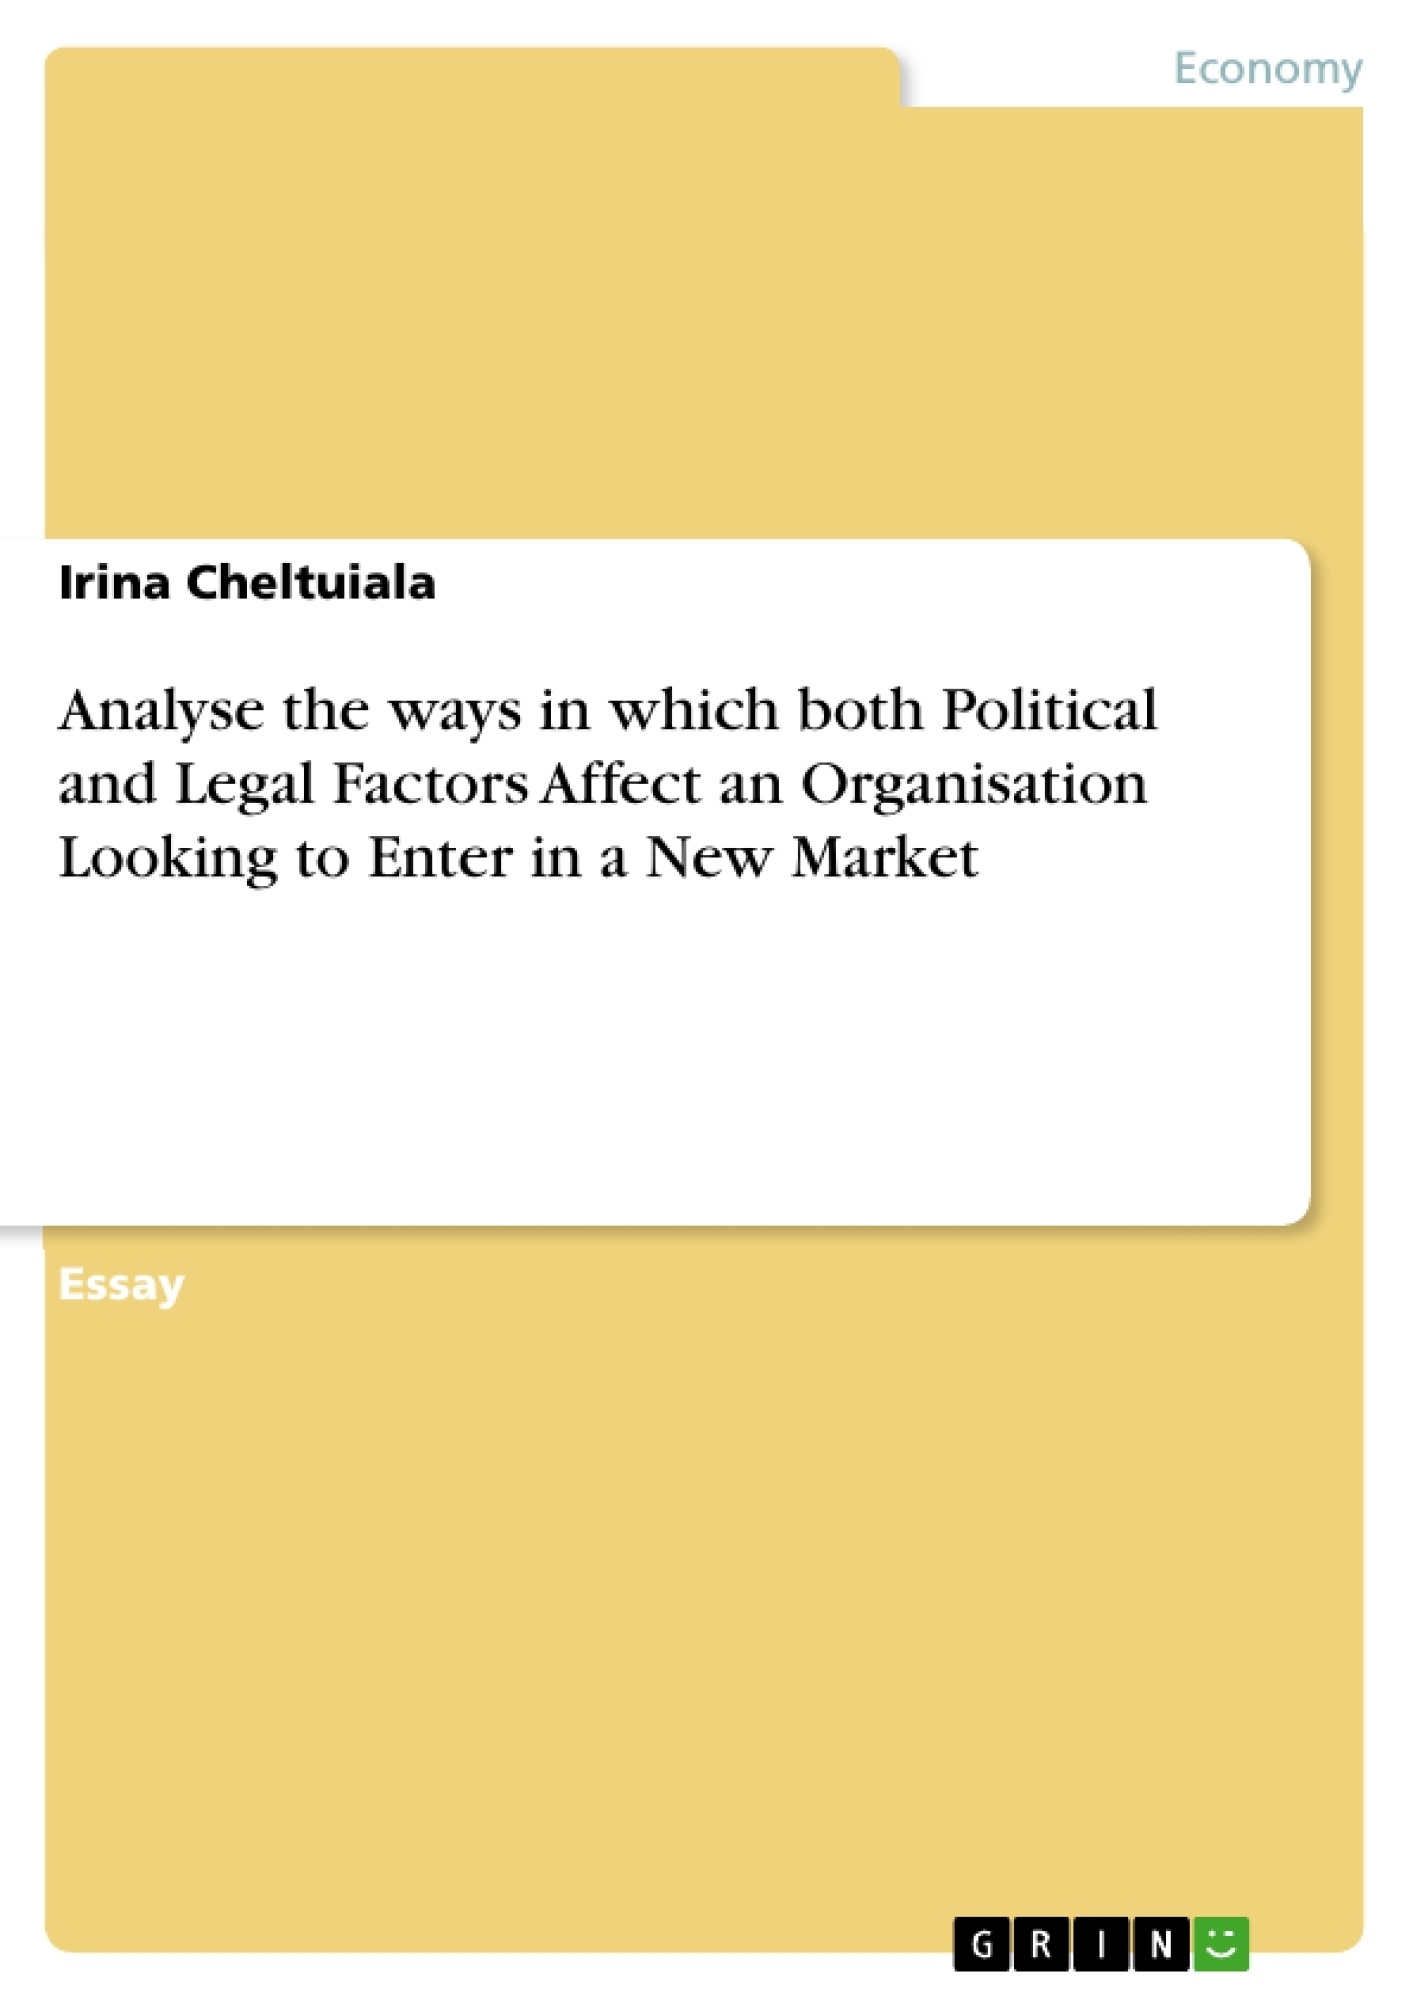 Title: Analyse the ways in which both Political and Legal Factors Affect an Organisation Looking to Enter in a New Market